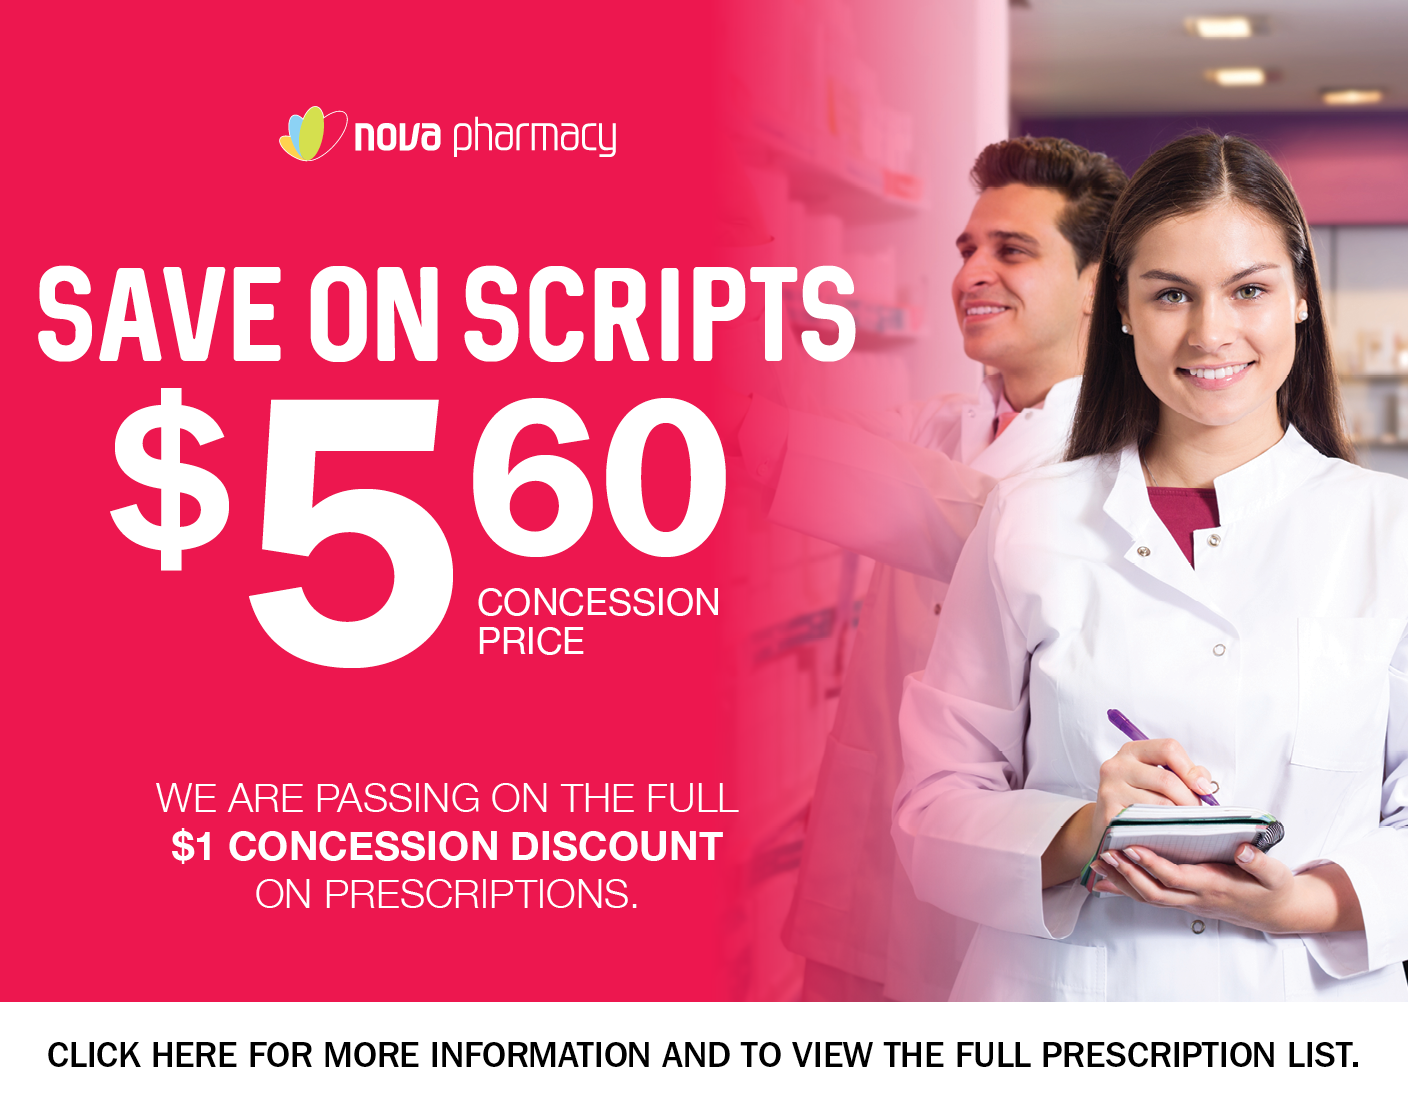 Save on Scripts $5.60 Concession prices